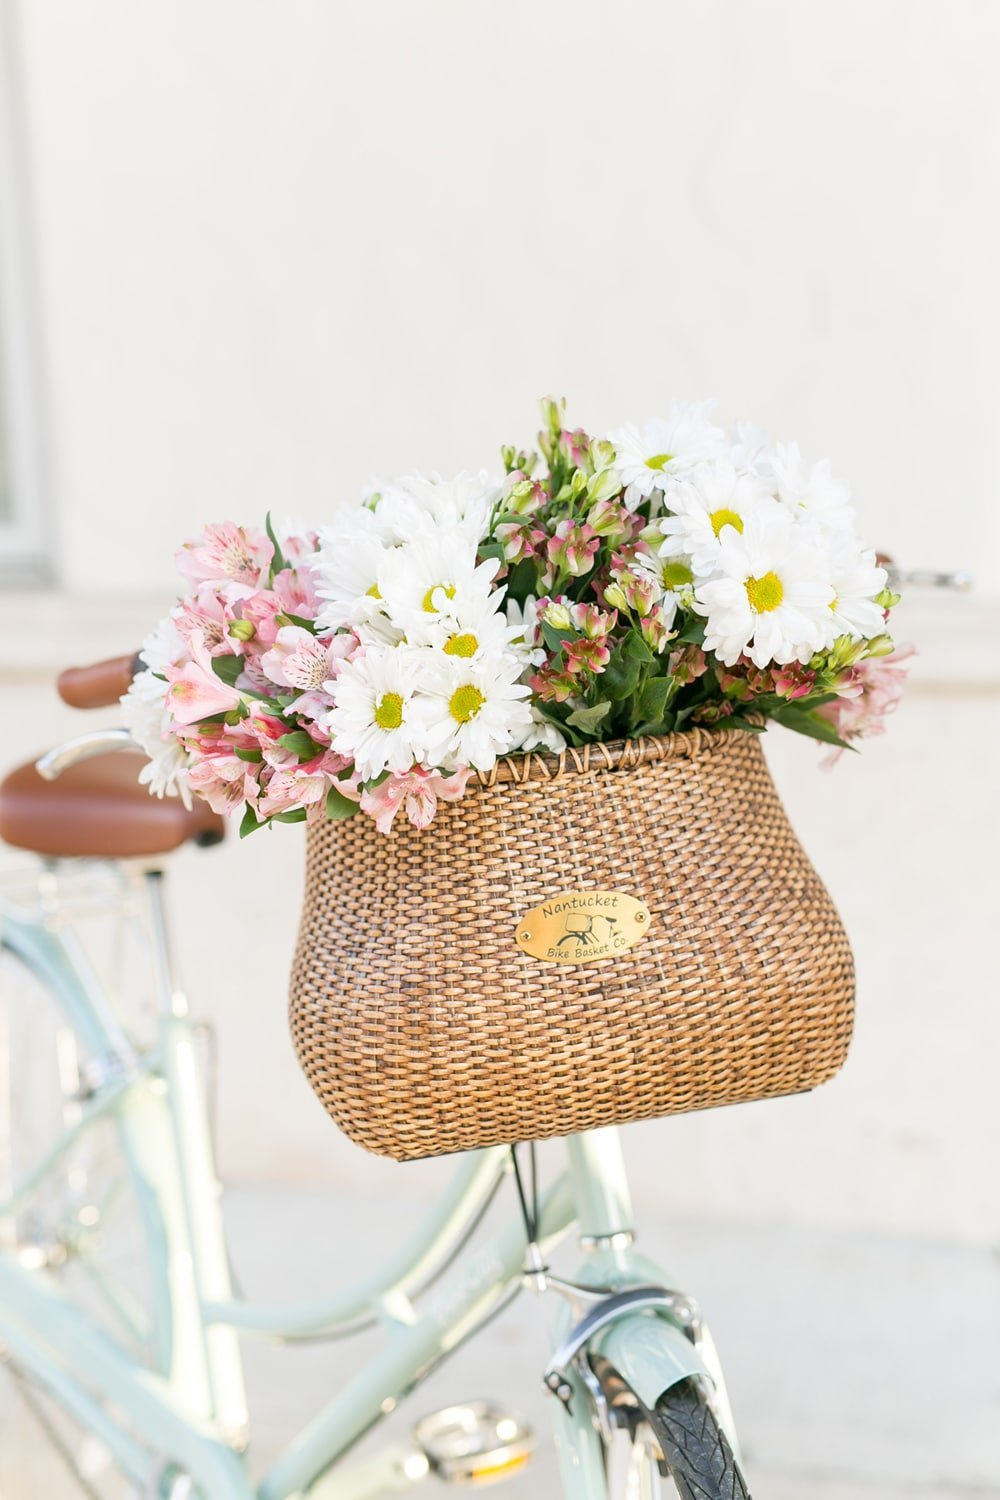 Nantucket Bike Basket Co filled with flowers! | www.ashleybrookedesigns.com